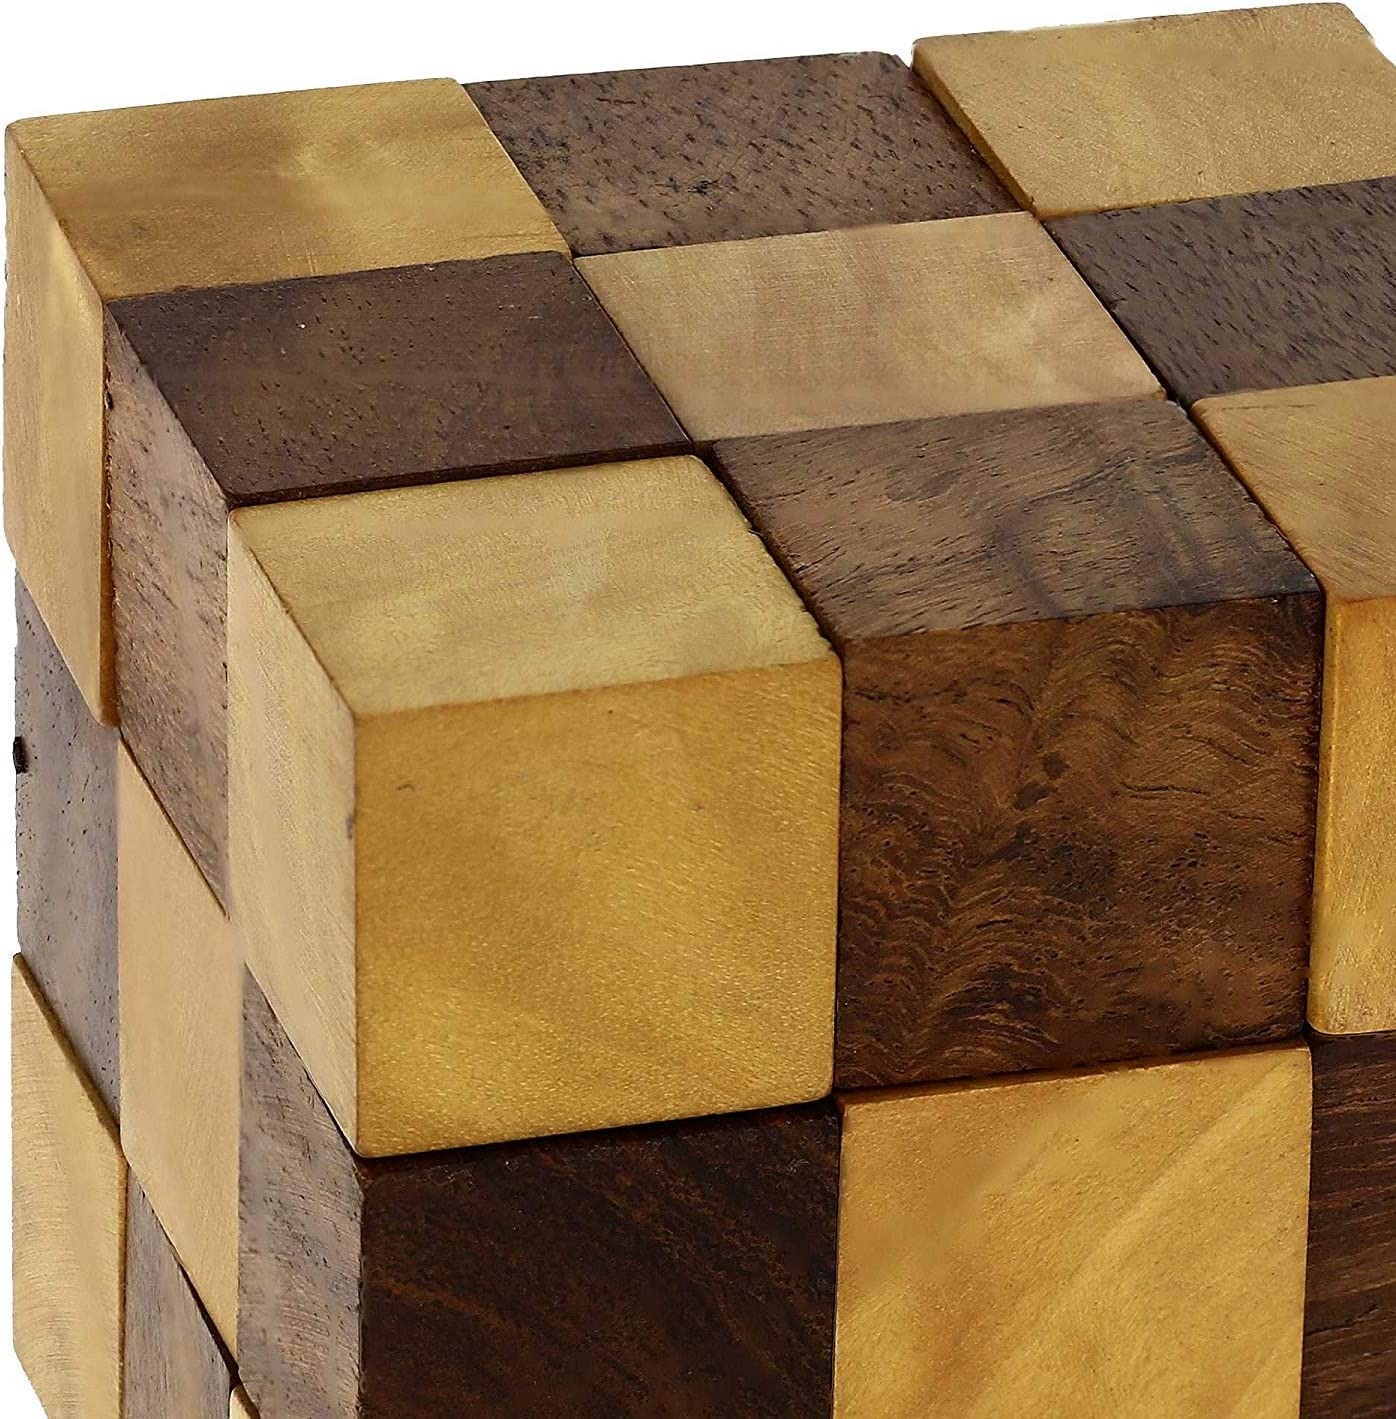 JBRD TOYS Wooden Puzzle Adult Snake Cube Handmade Gifts India 2 in